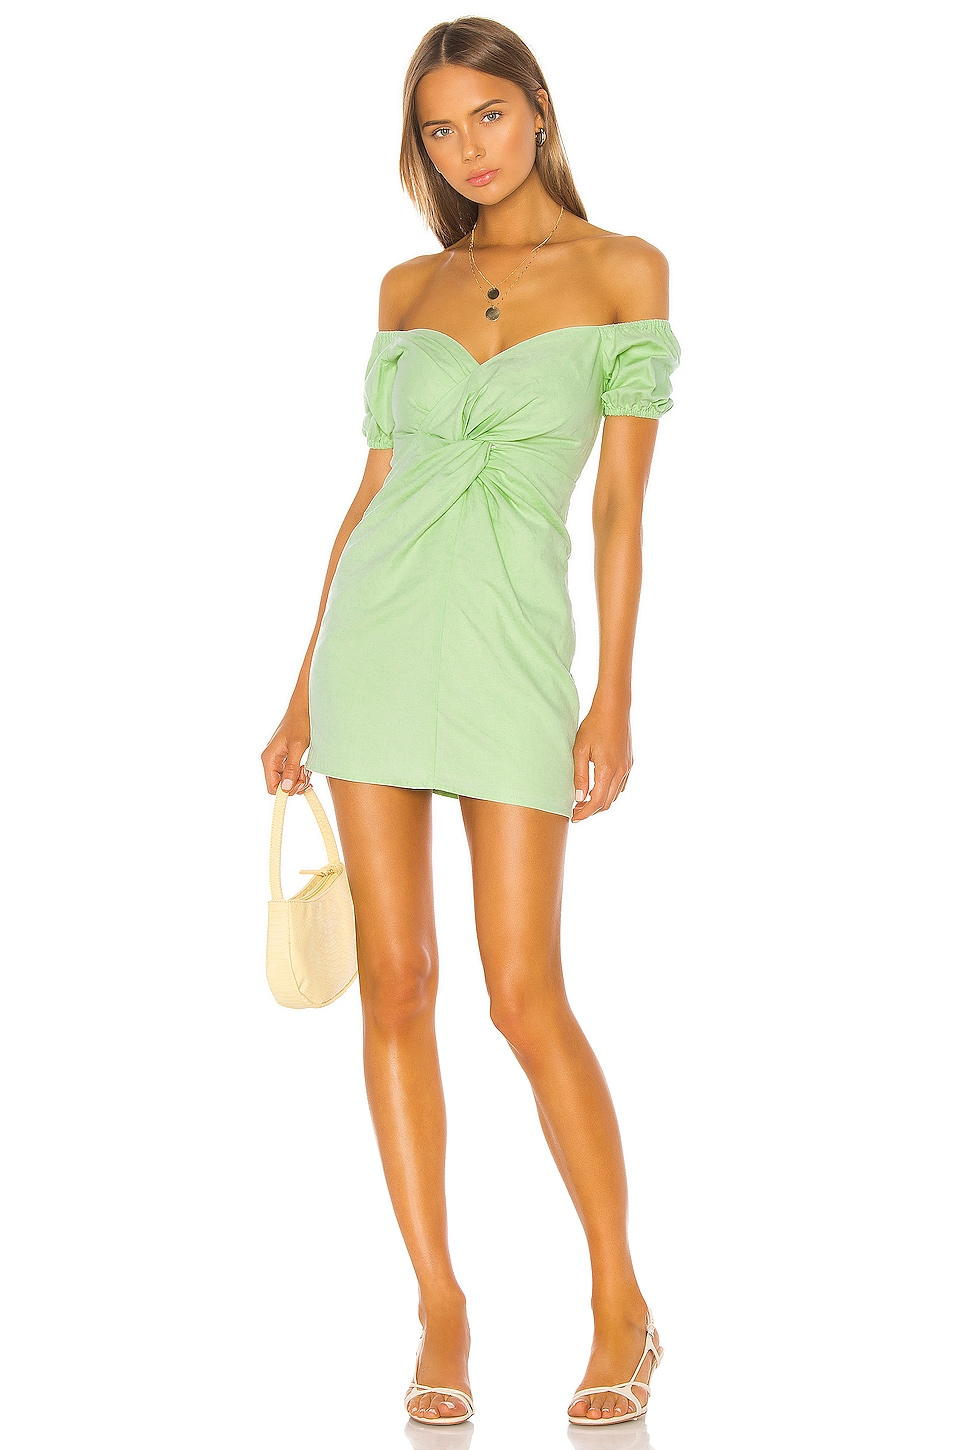 Camila Coelho Georgie Dress in Soft Mint